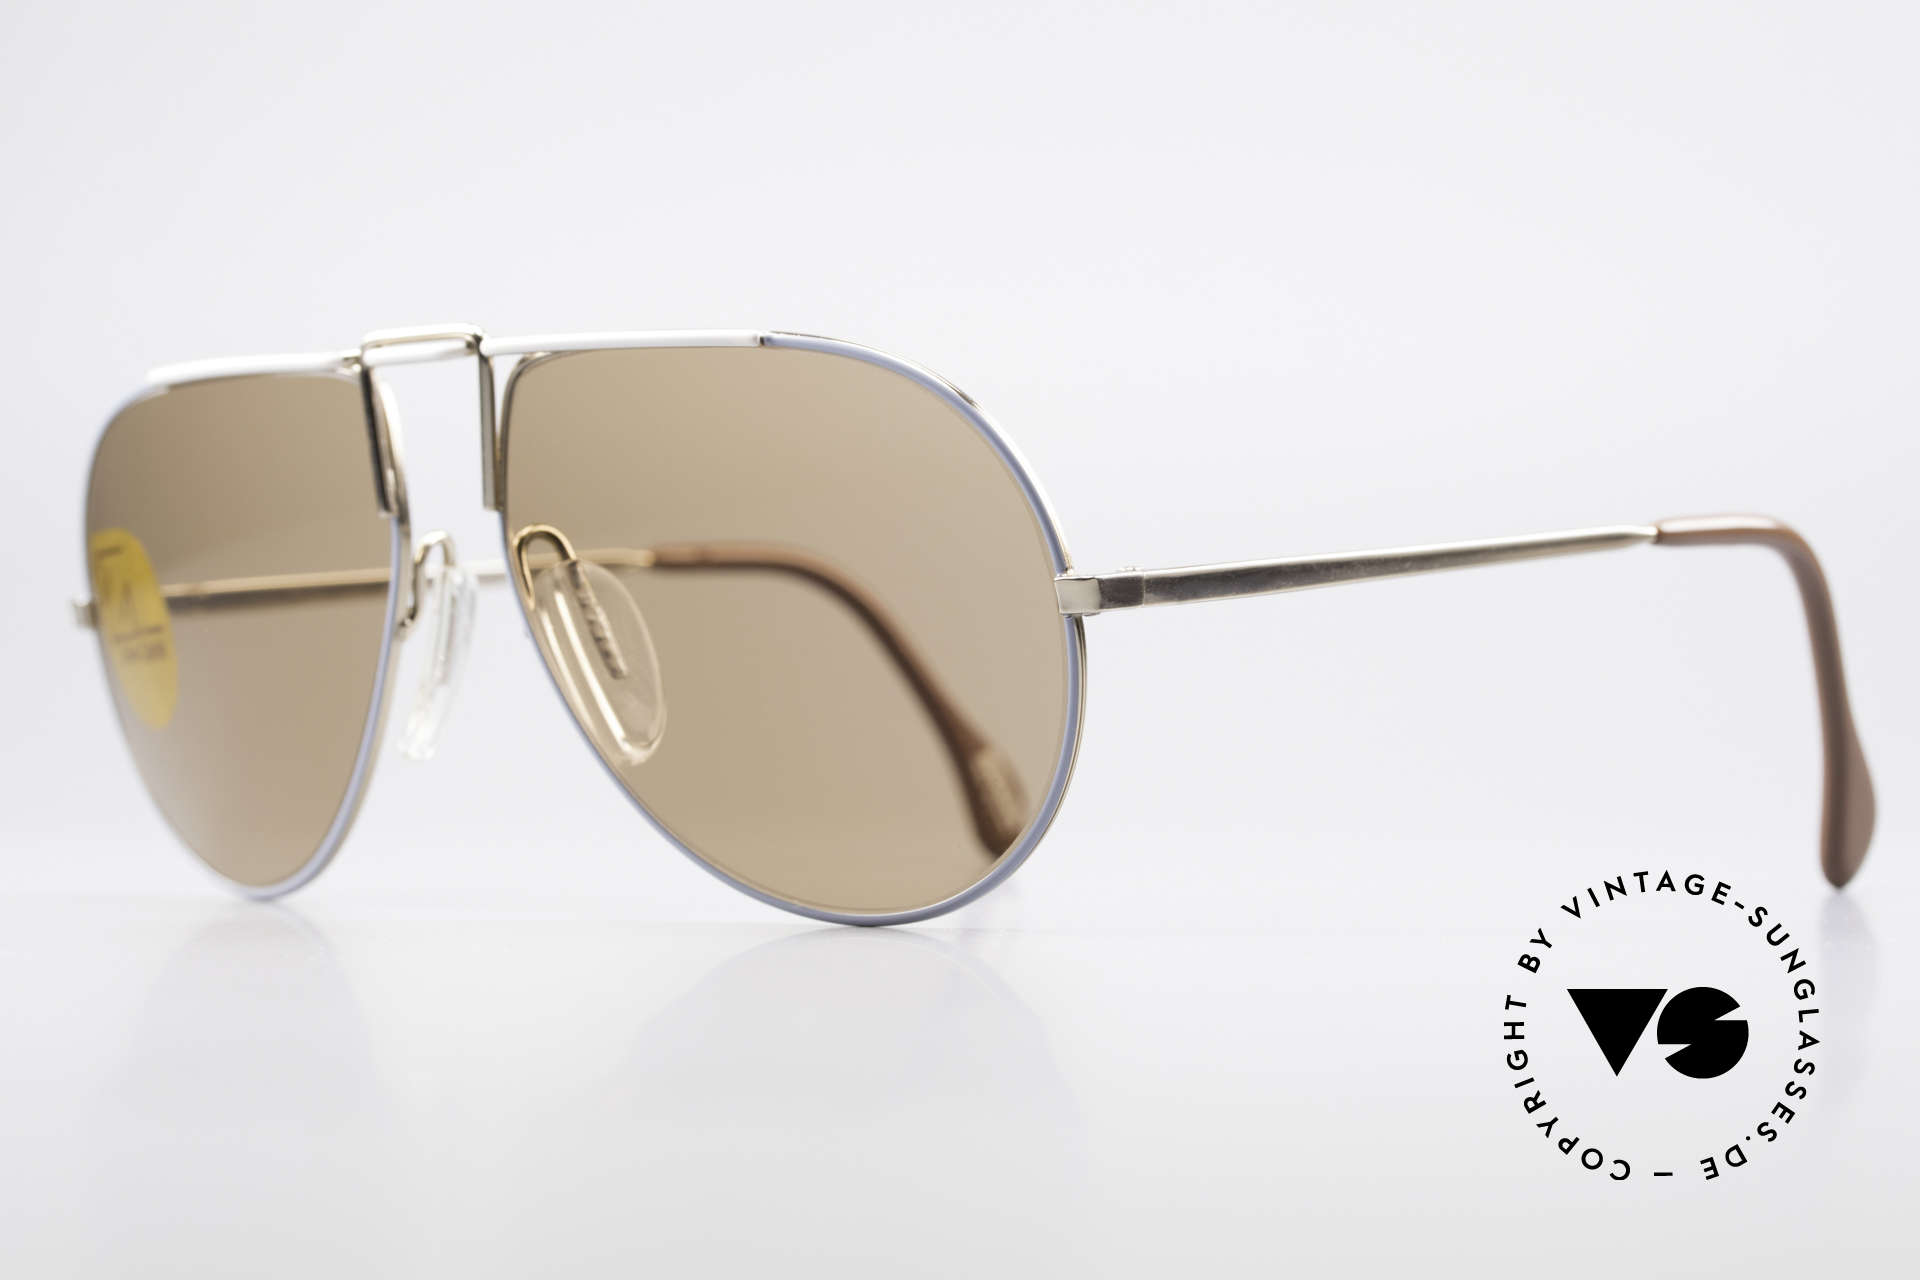 Zeiss 9357 Rare Aviator Sunglasses 80's, noble frame coloring with gold, blue and white, Made for Men and Women